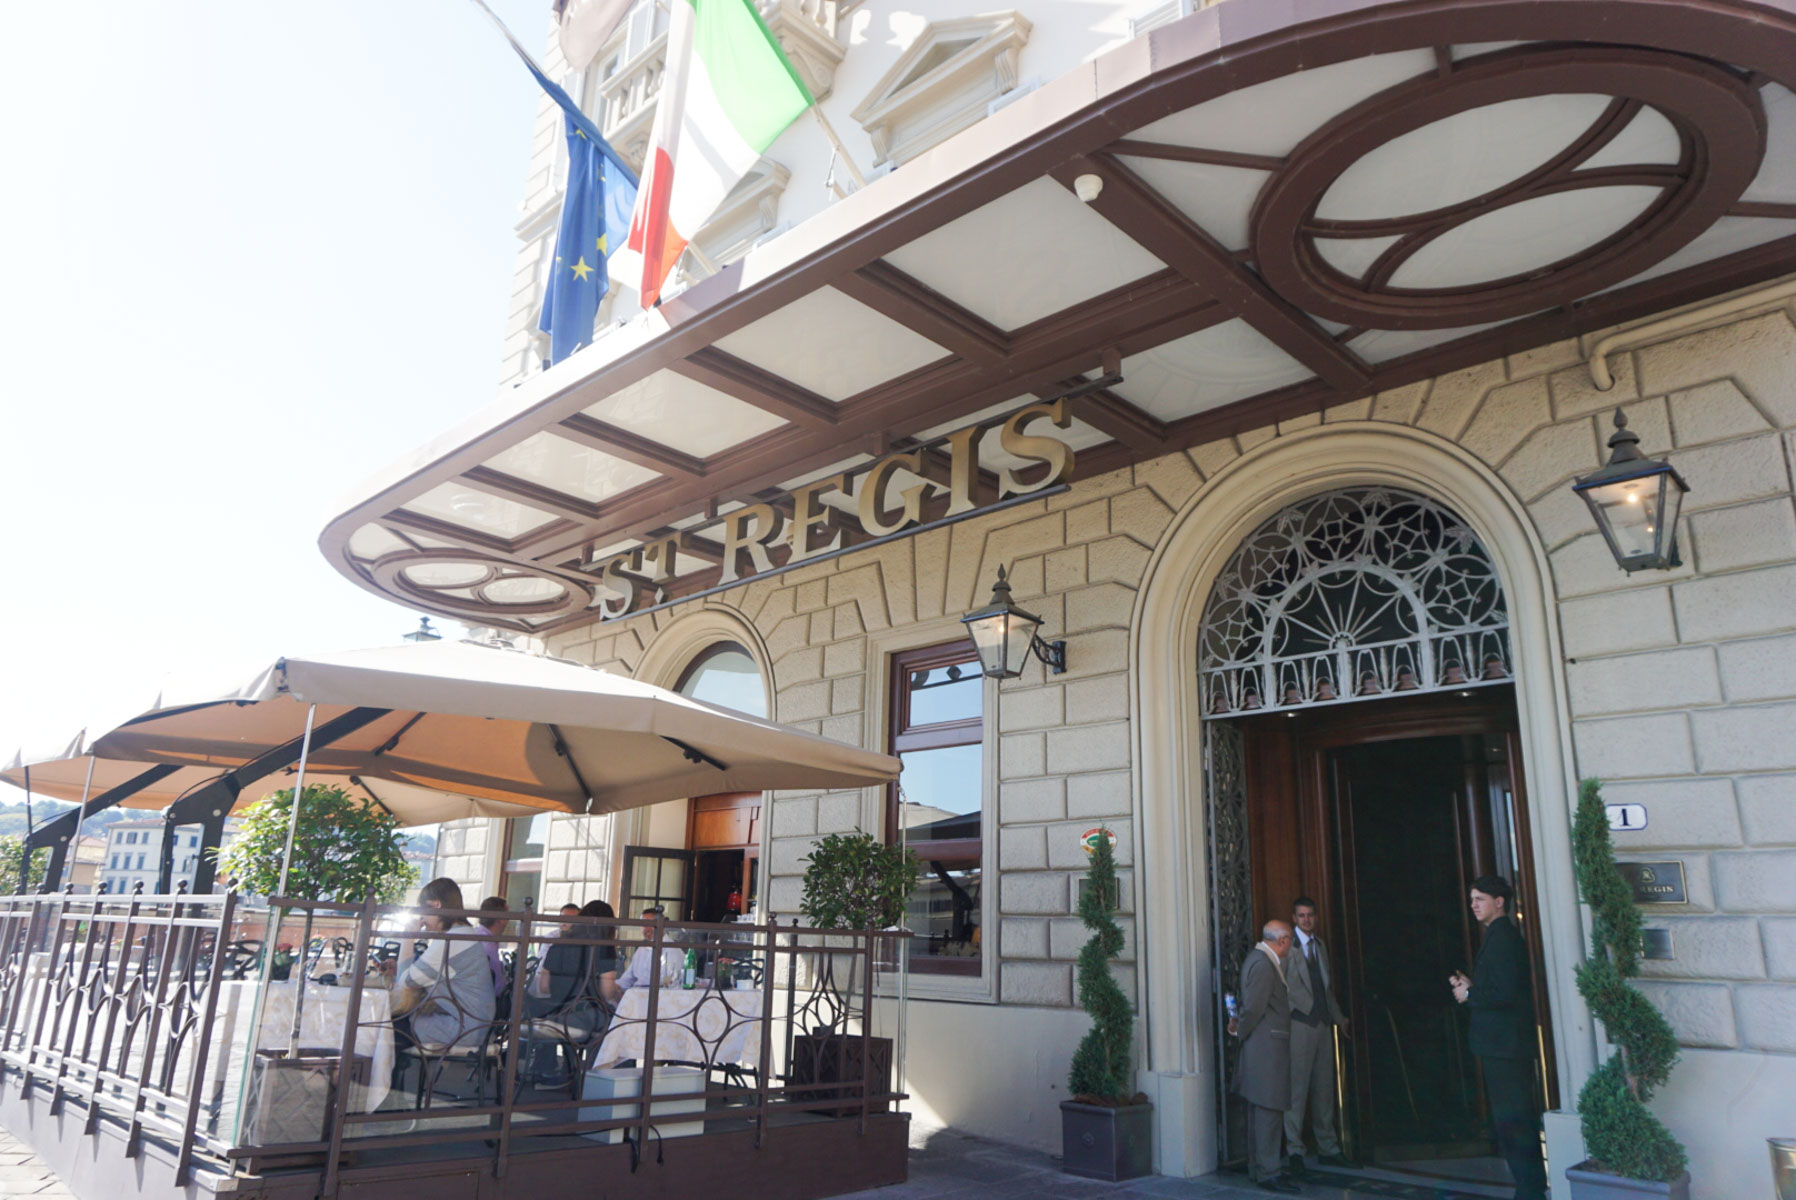 The beautiful entrance to the St. Regis in Florence, Italy.